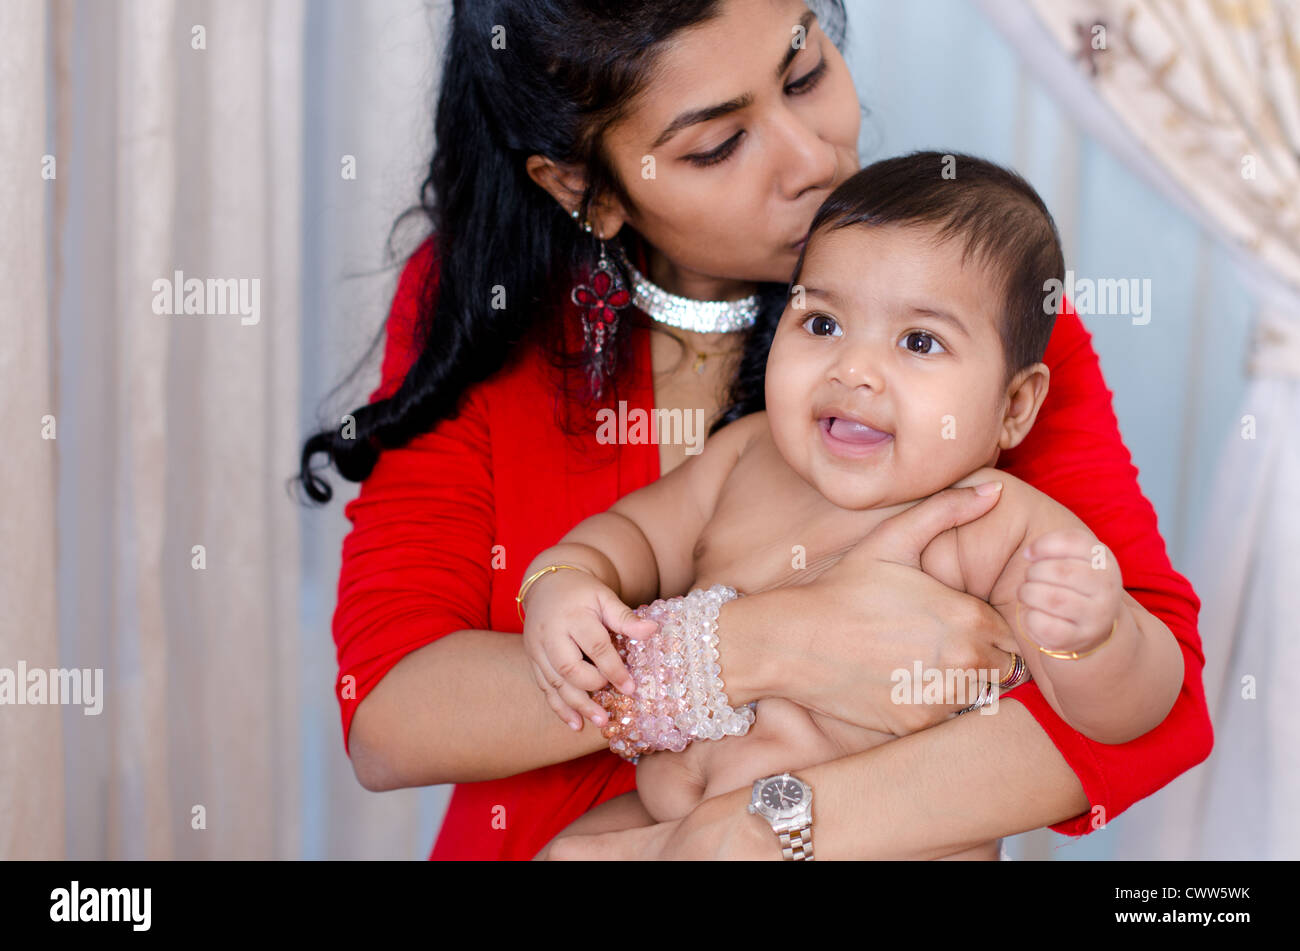 Indian madre baciando la sua bambina, interni Foto Stock